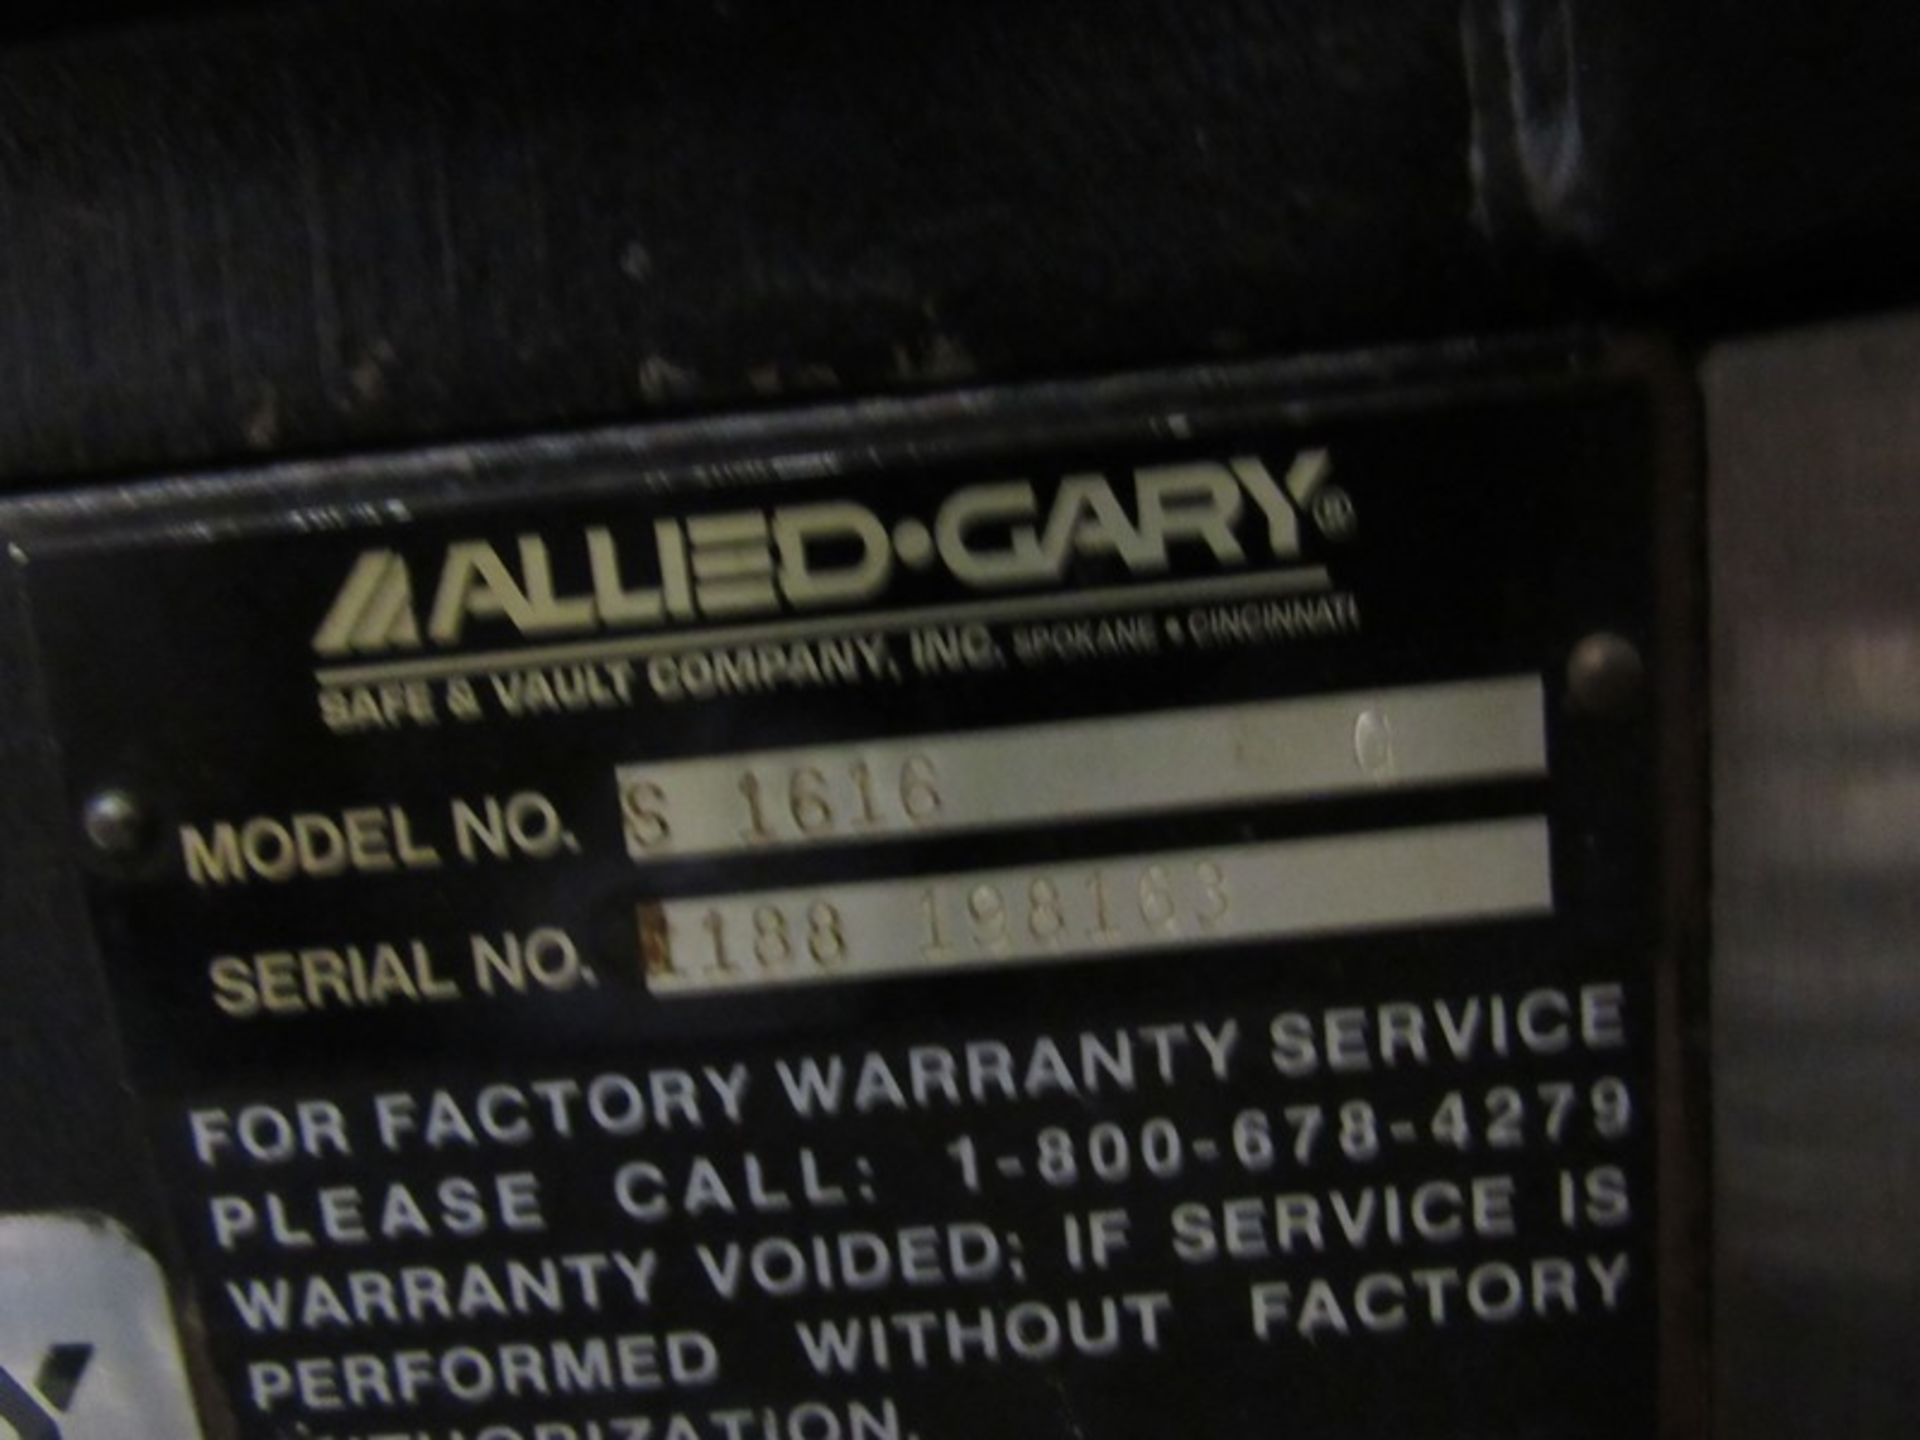 "Lot 216 - Allied-Gary Mdl. S1616 Combination Safe, 22"" W X 24"" D X 28"" T, Ser. #1188-198163, with combination"